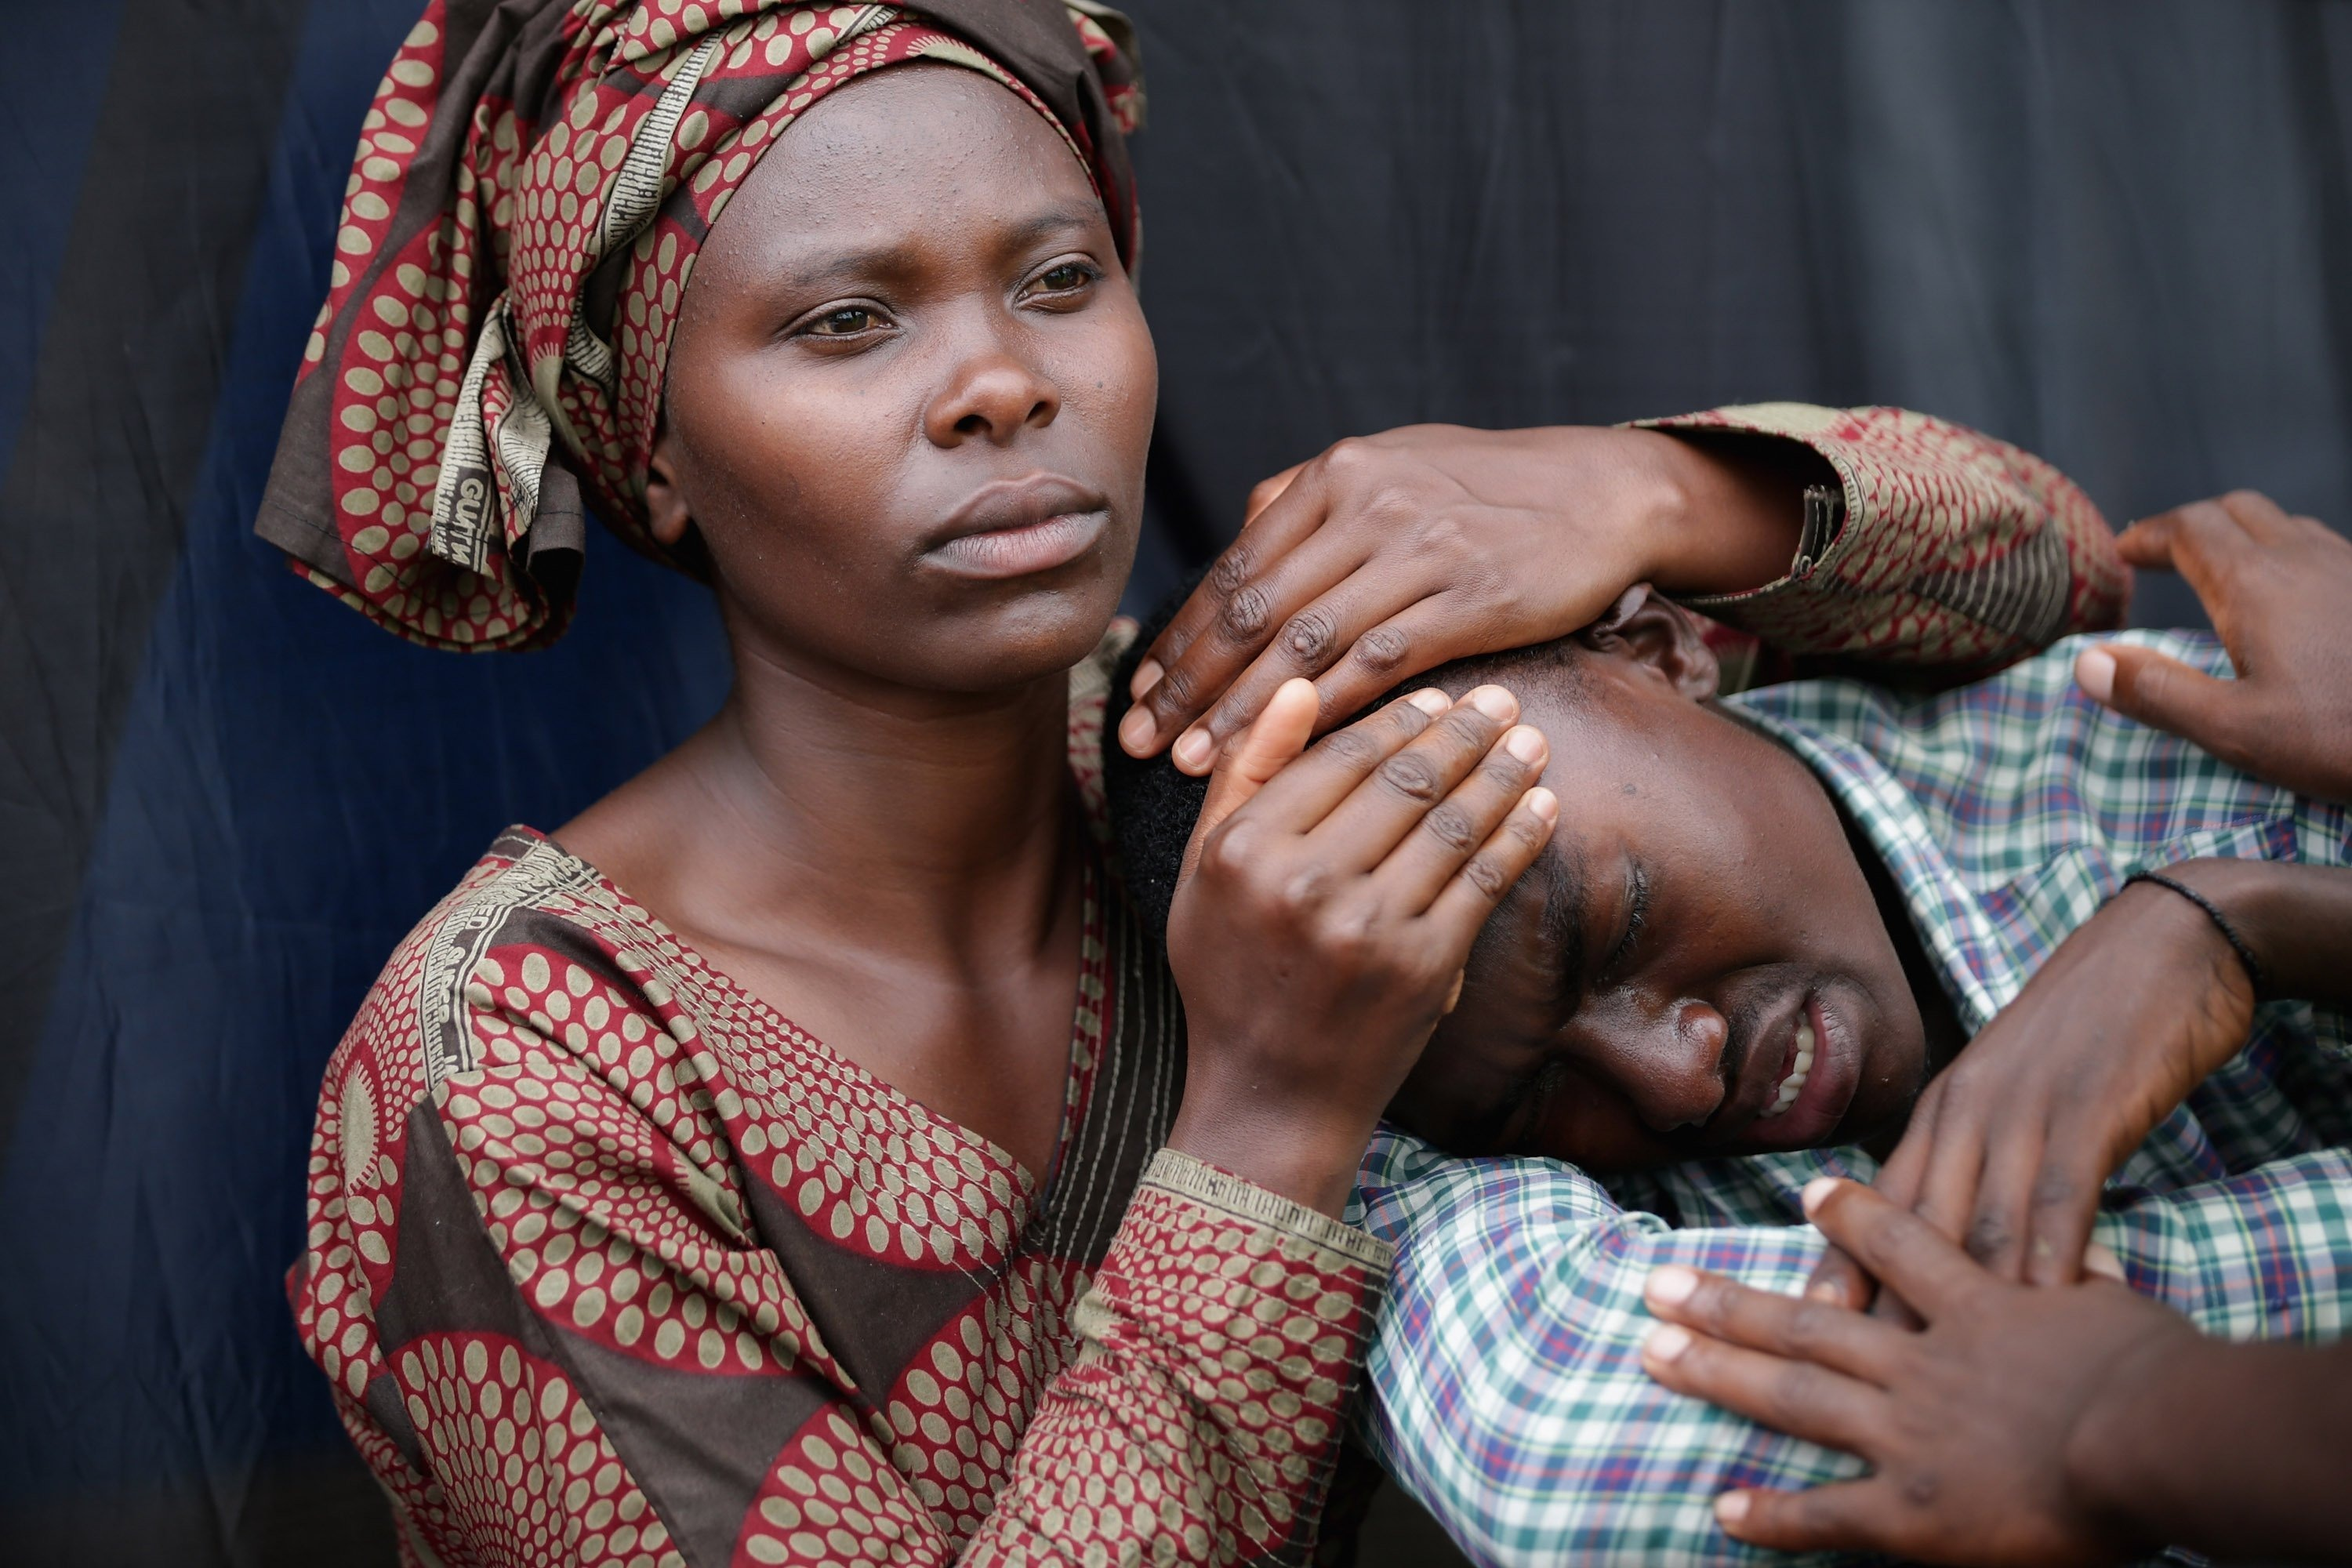 Rwandans impacted by the genocide comfort each other during a commemoration ceremony in Kigali, on April 7.